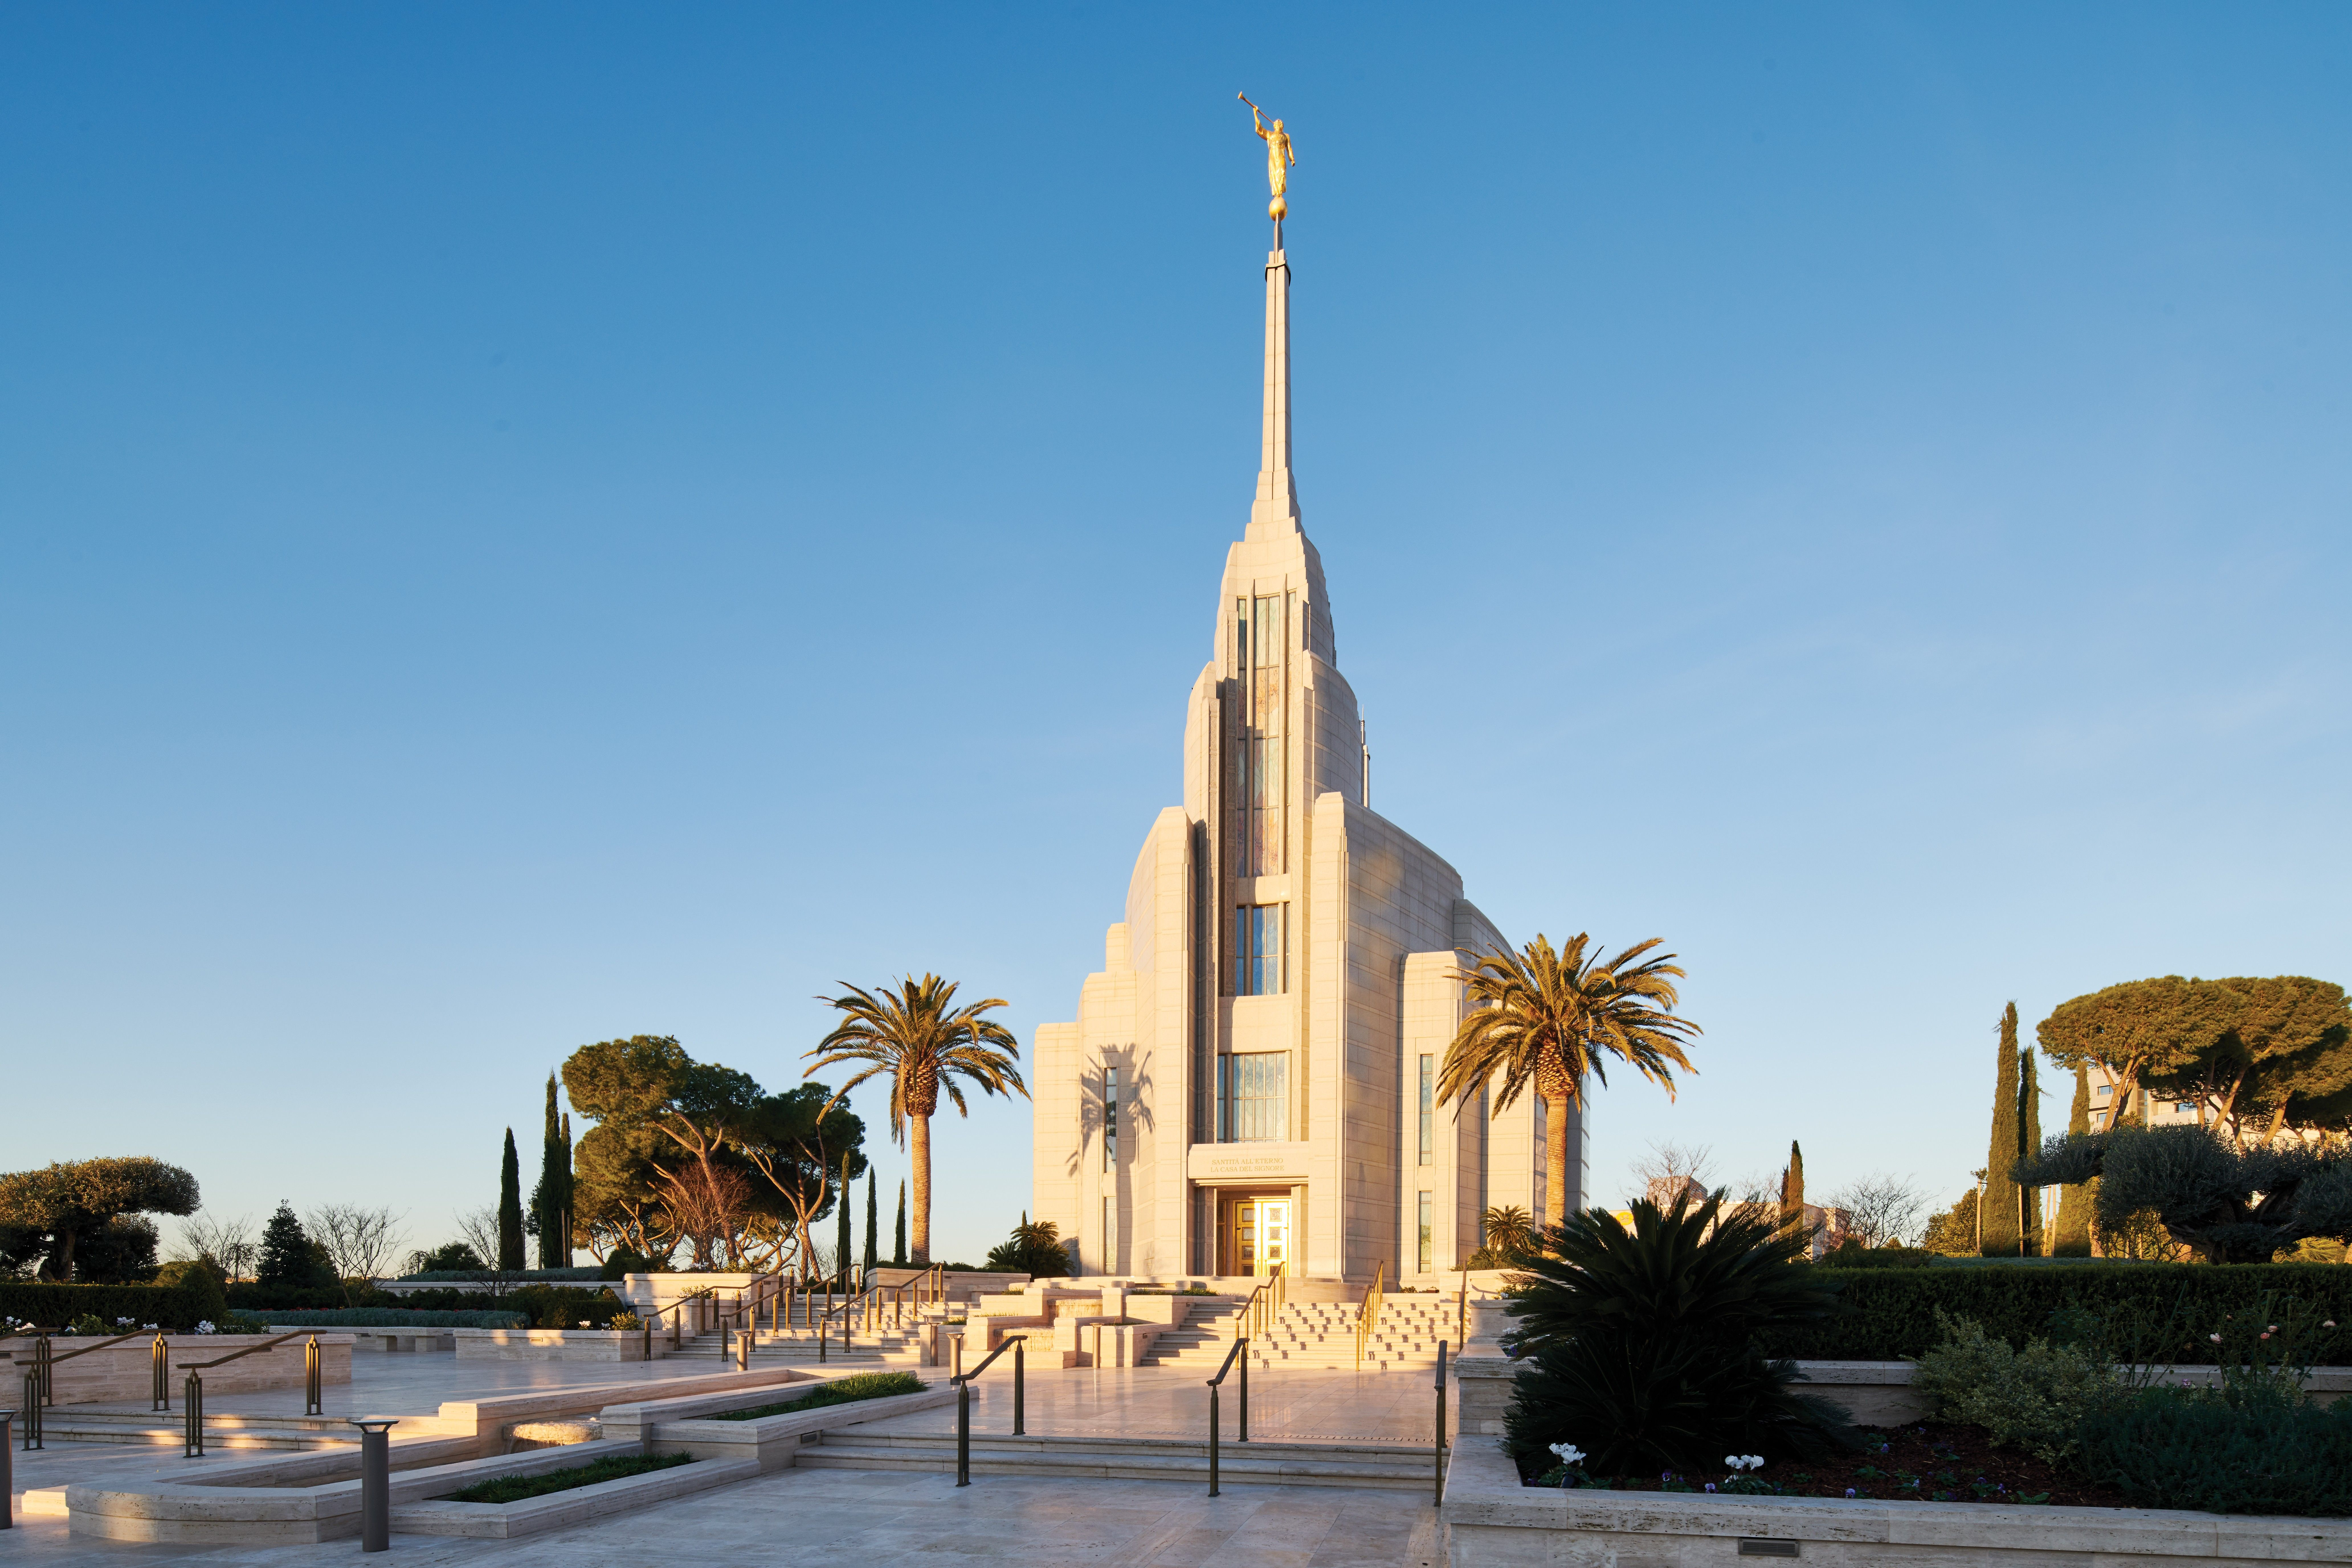 The Rome Italy Temple grounds during the day.